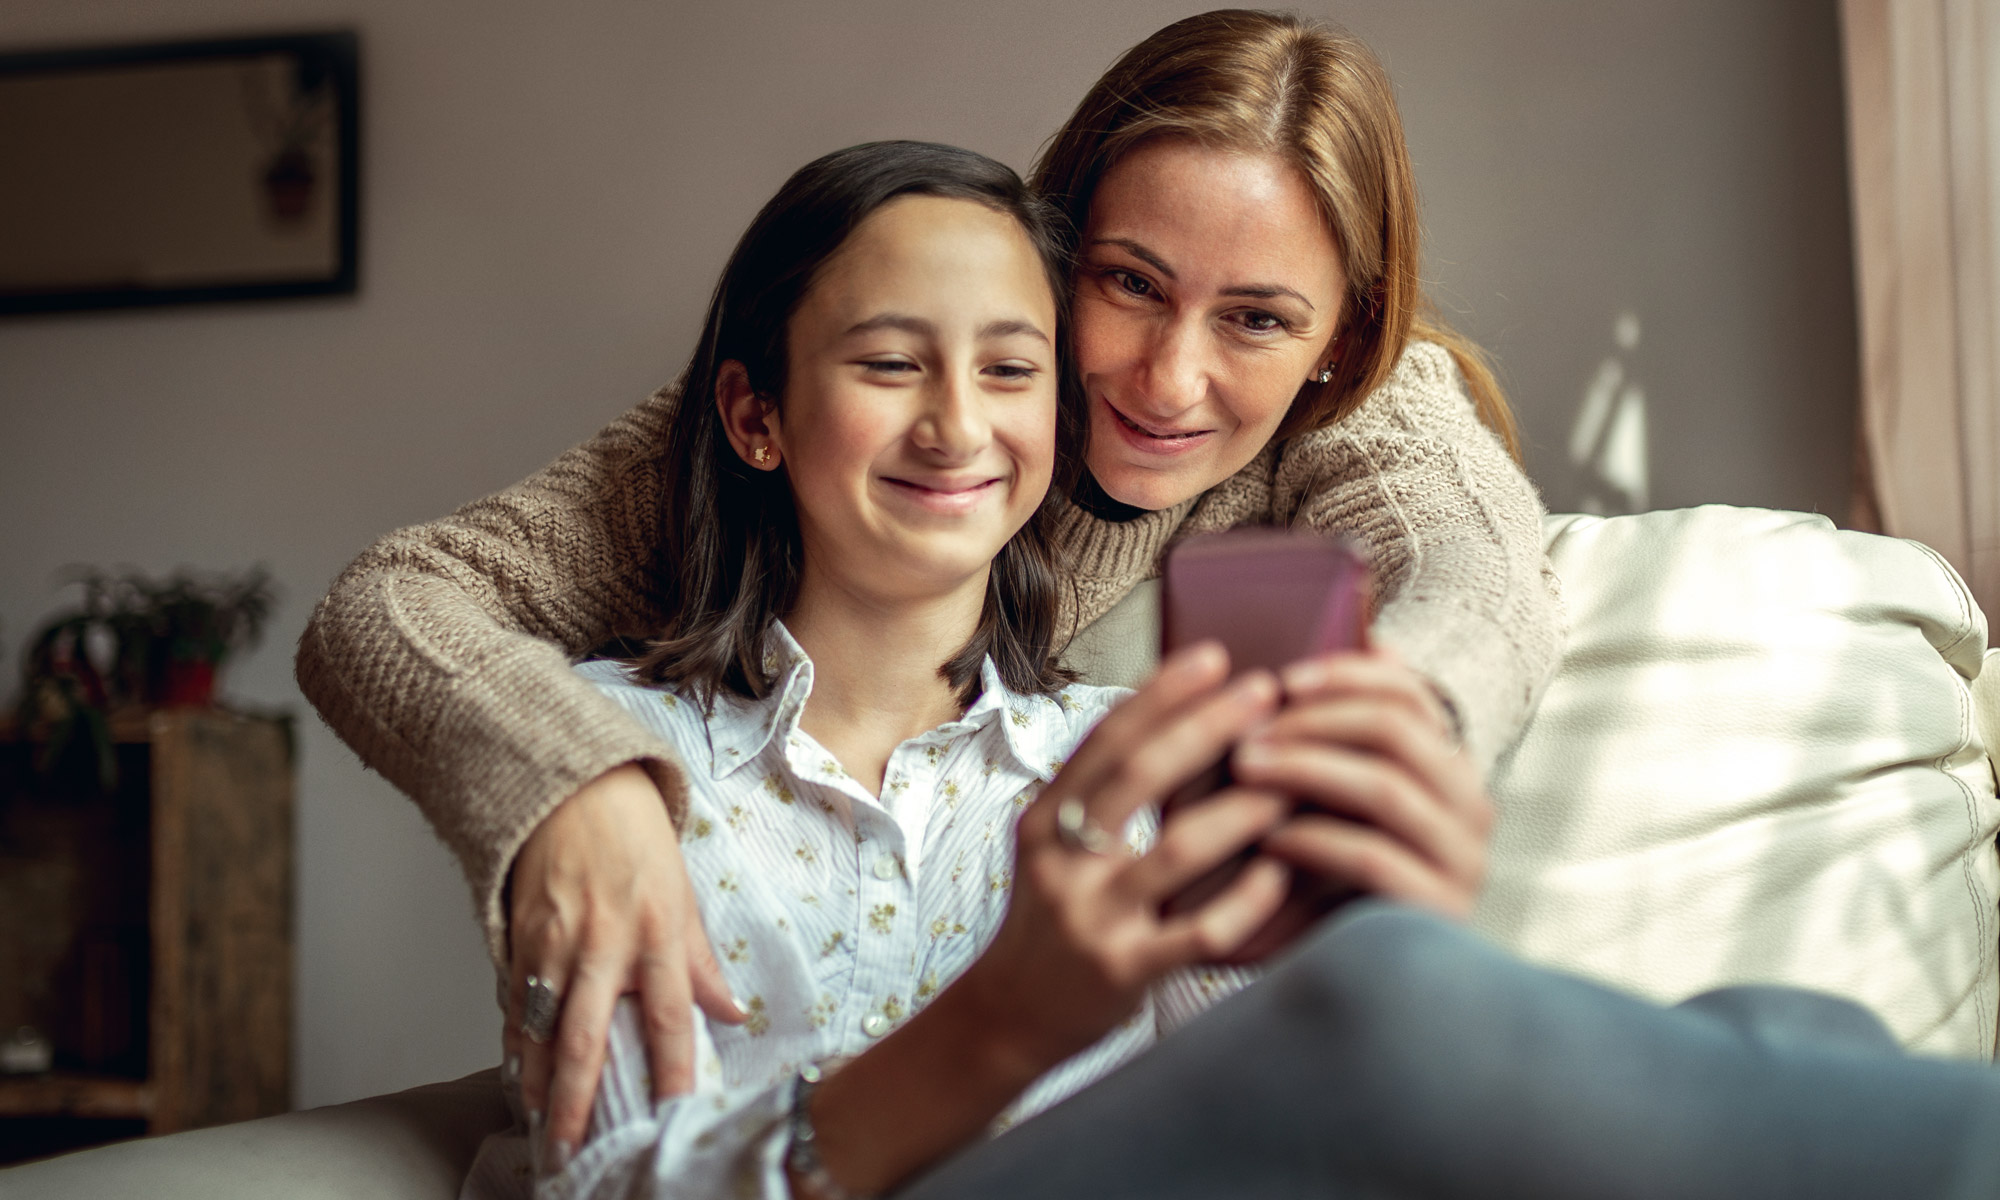 Woman and daughter looking at phone